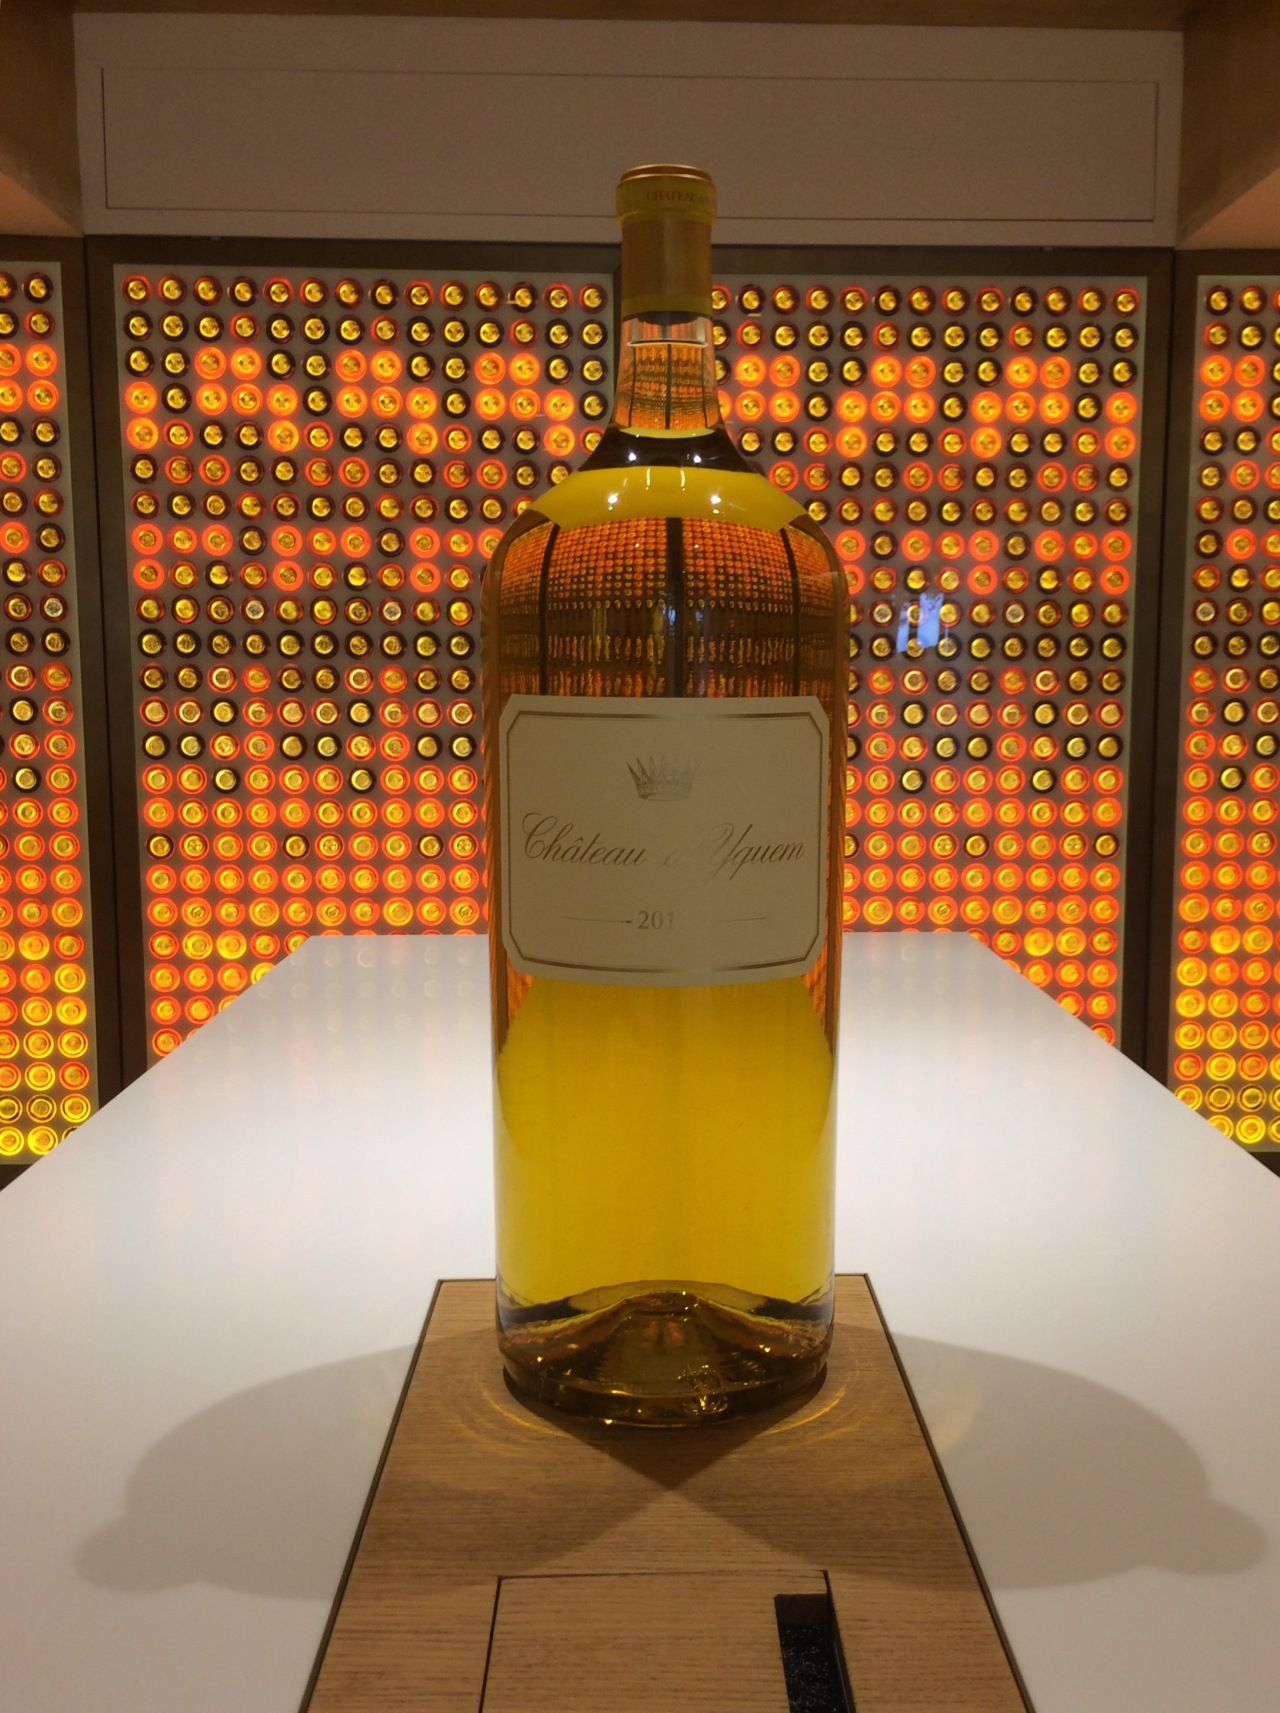 Tour of Chateau d'Yquem, Sauternes